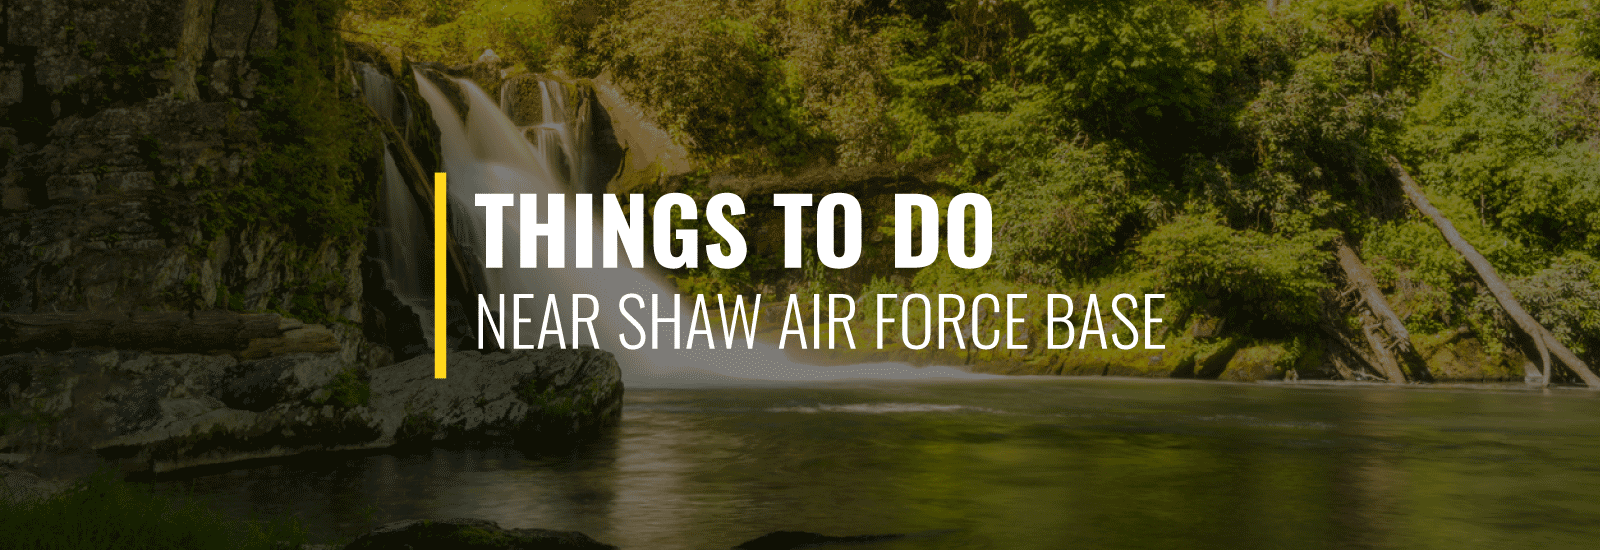 Things to Do Near Shaw AFB